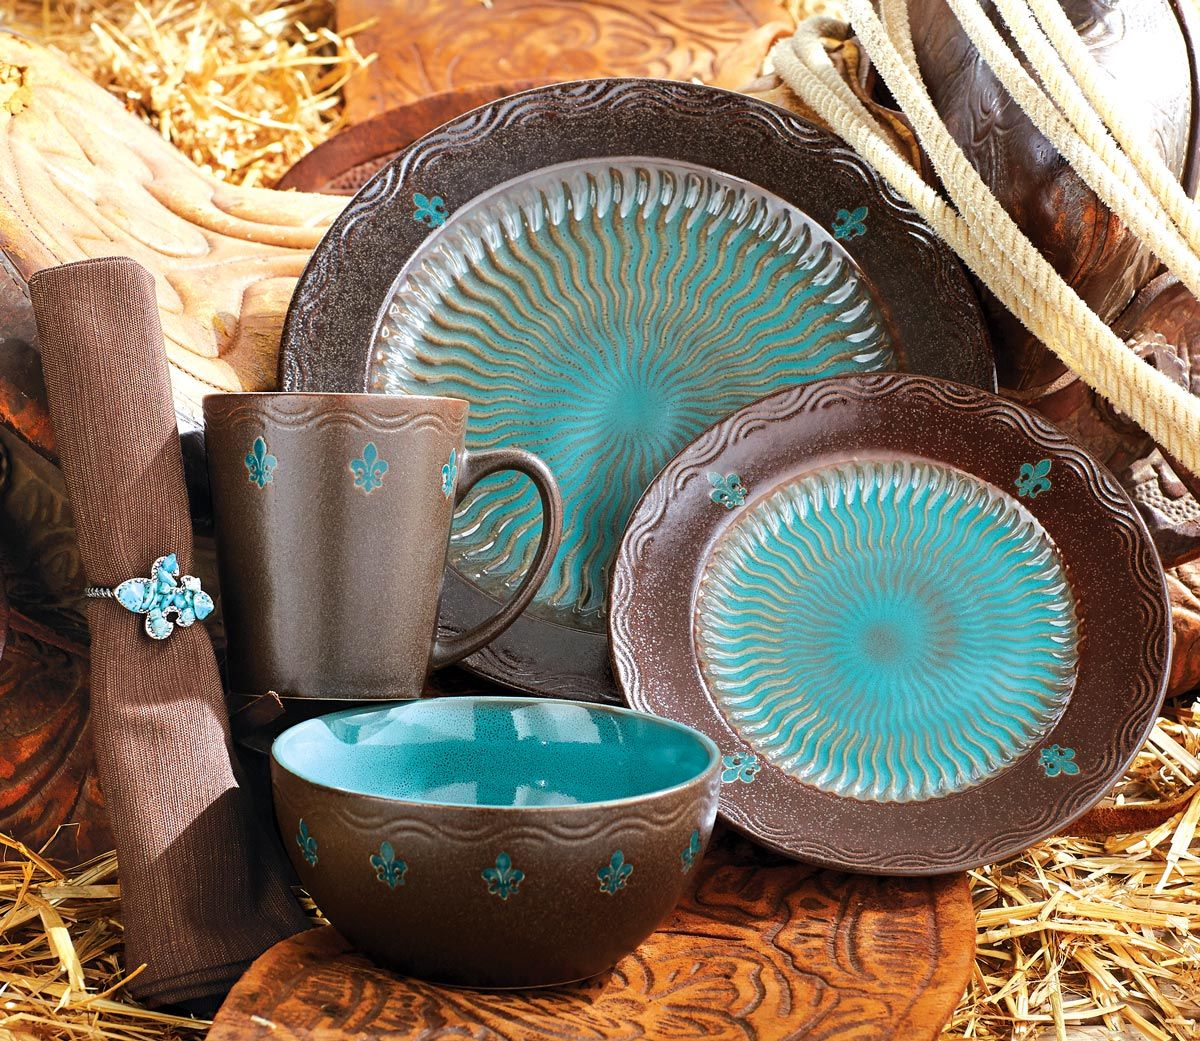 Western Decor Google Search Turquoise Kitchen Decor Western